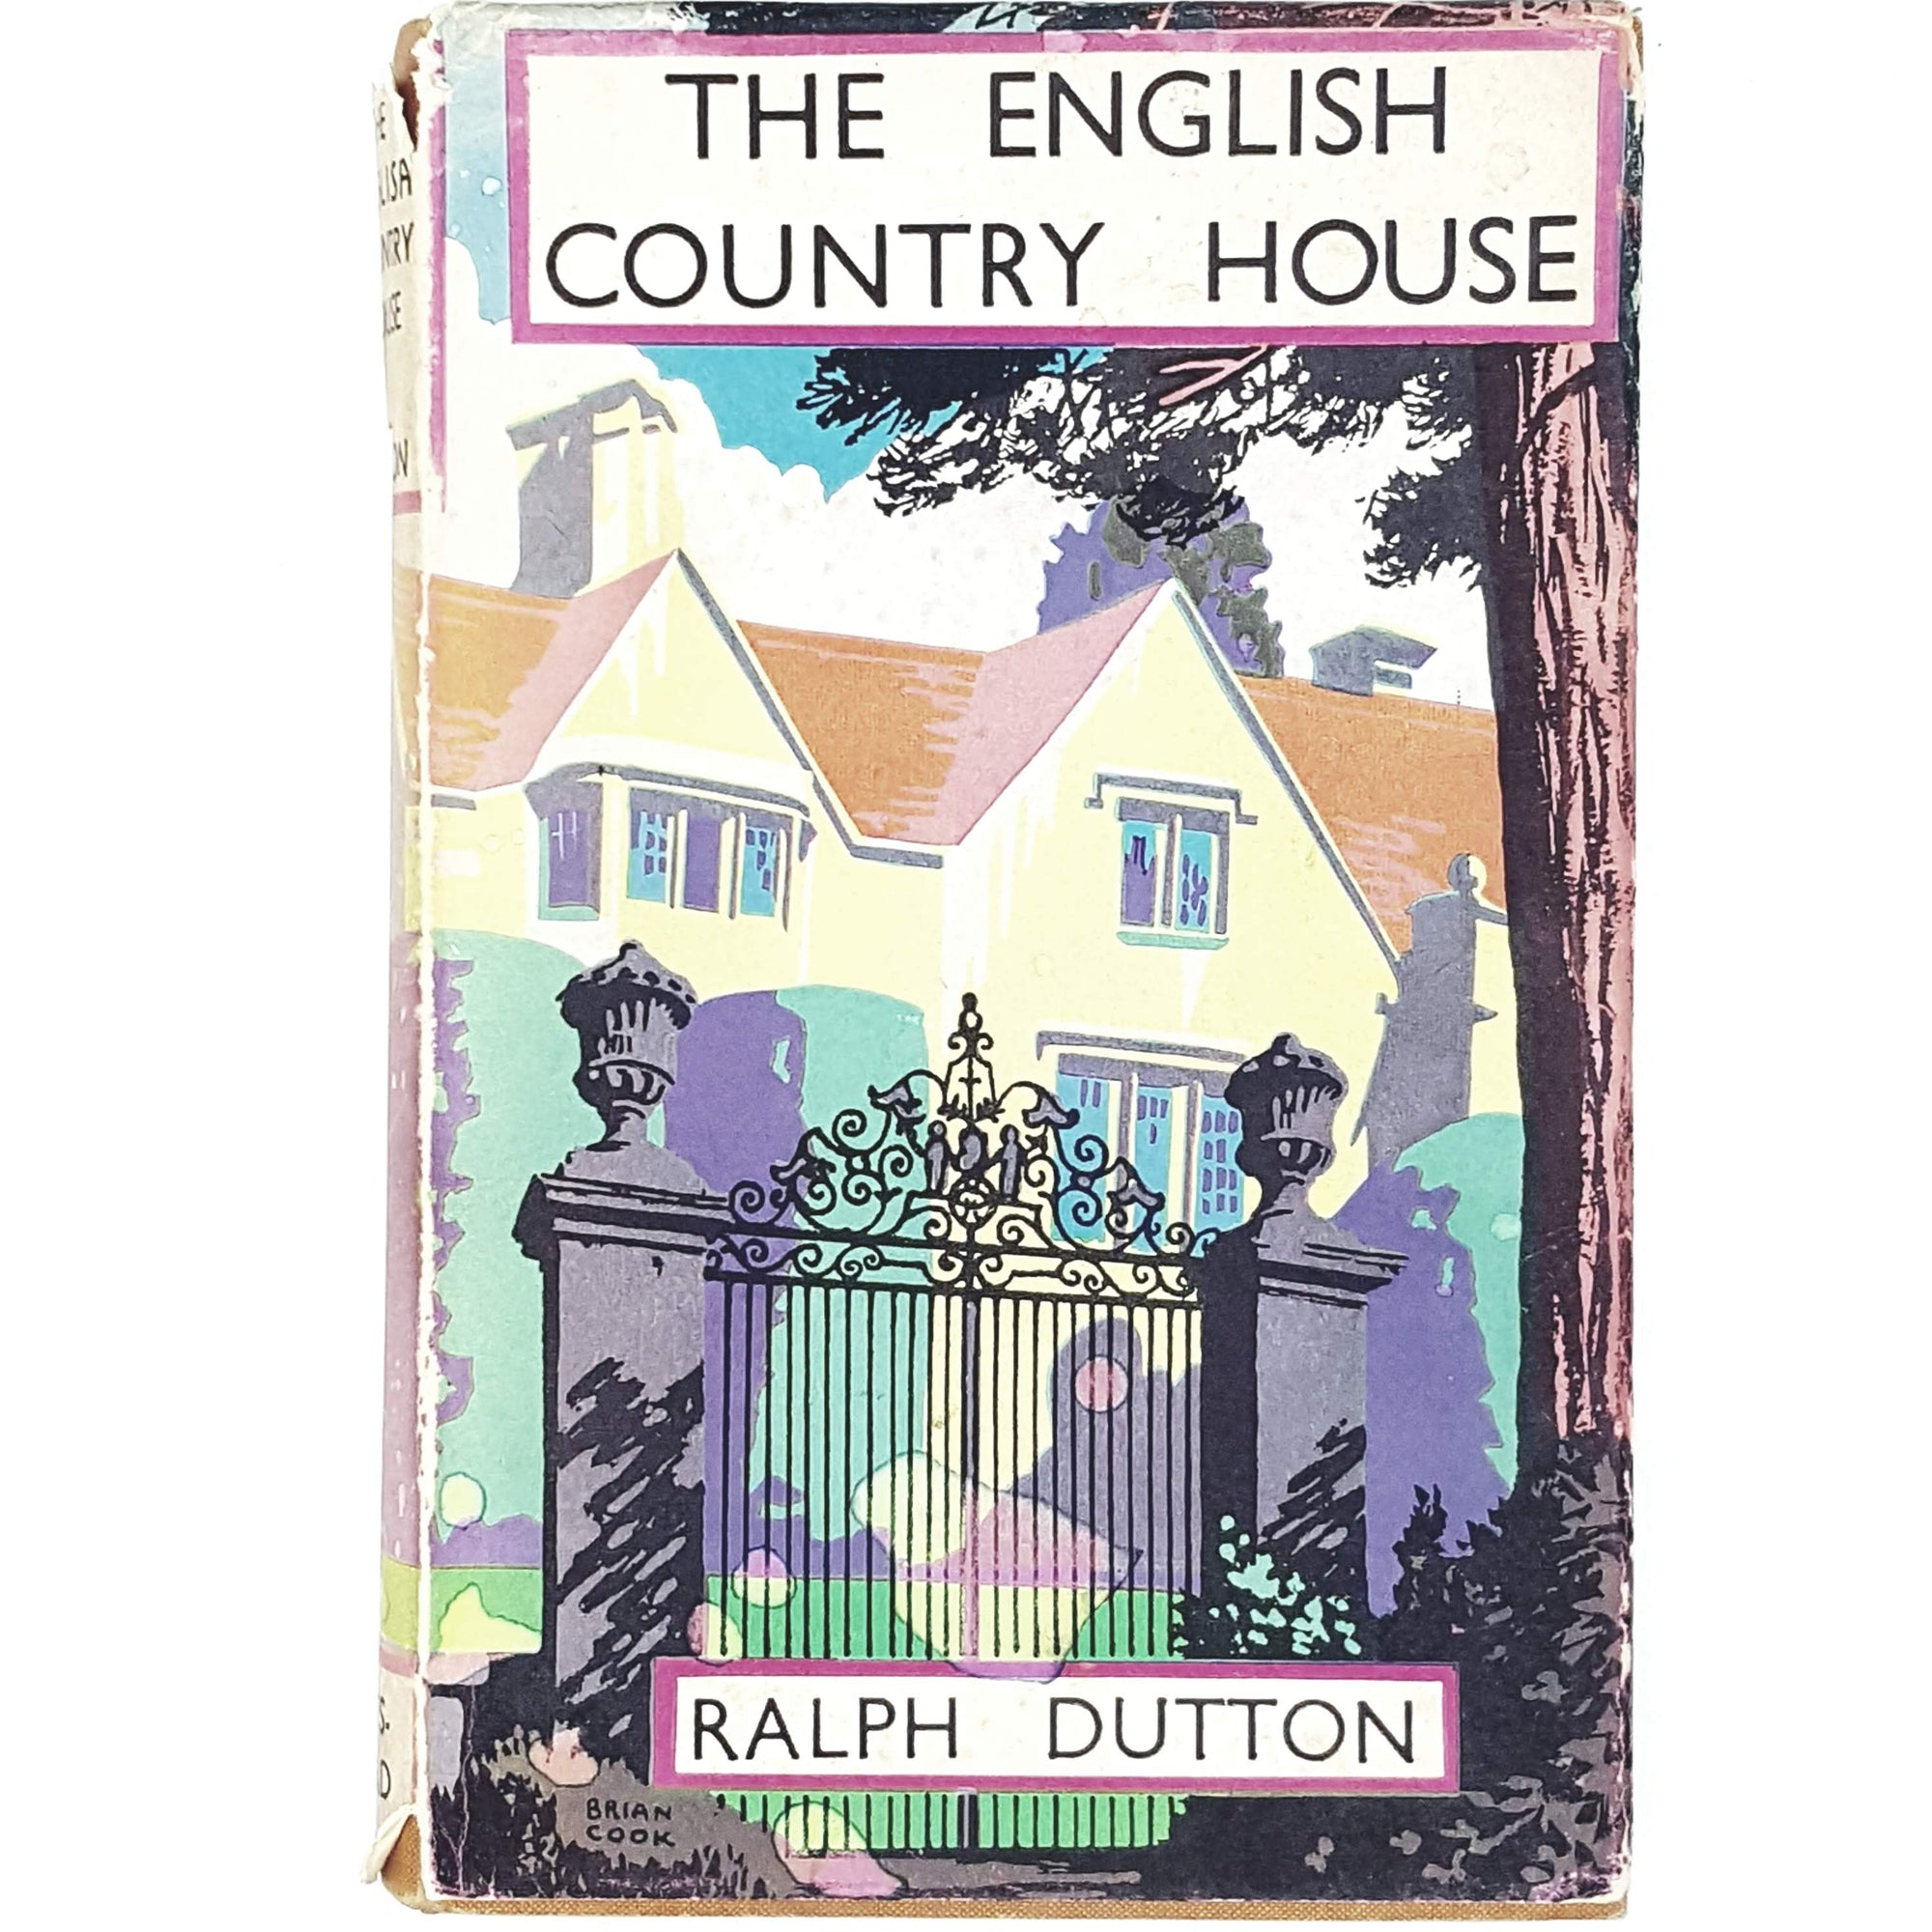 English Country House by Ralph Dutton